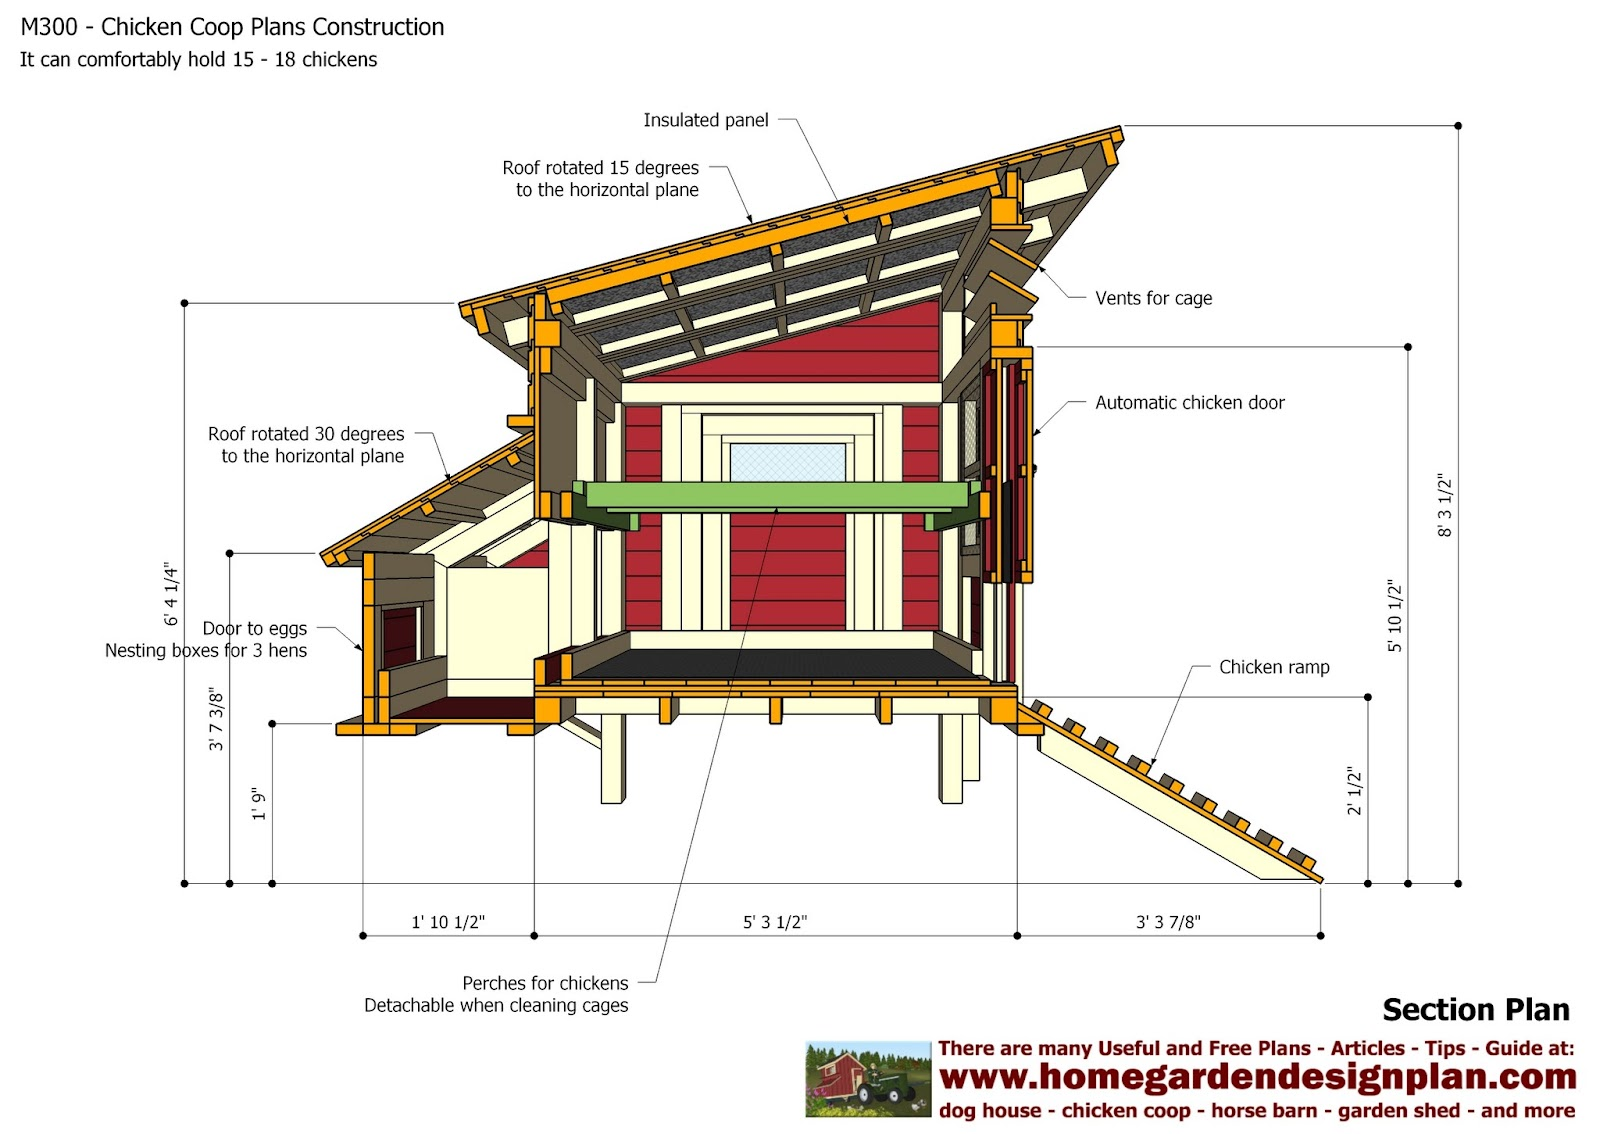 Dewa Coop This Is Building A Chicken Coop Pdf Download